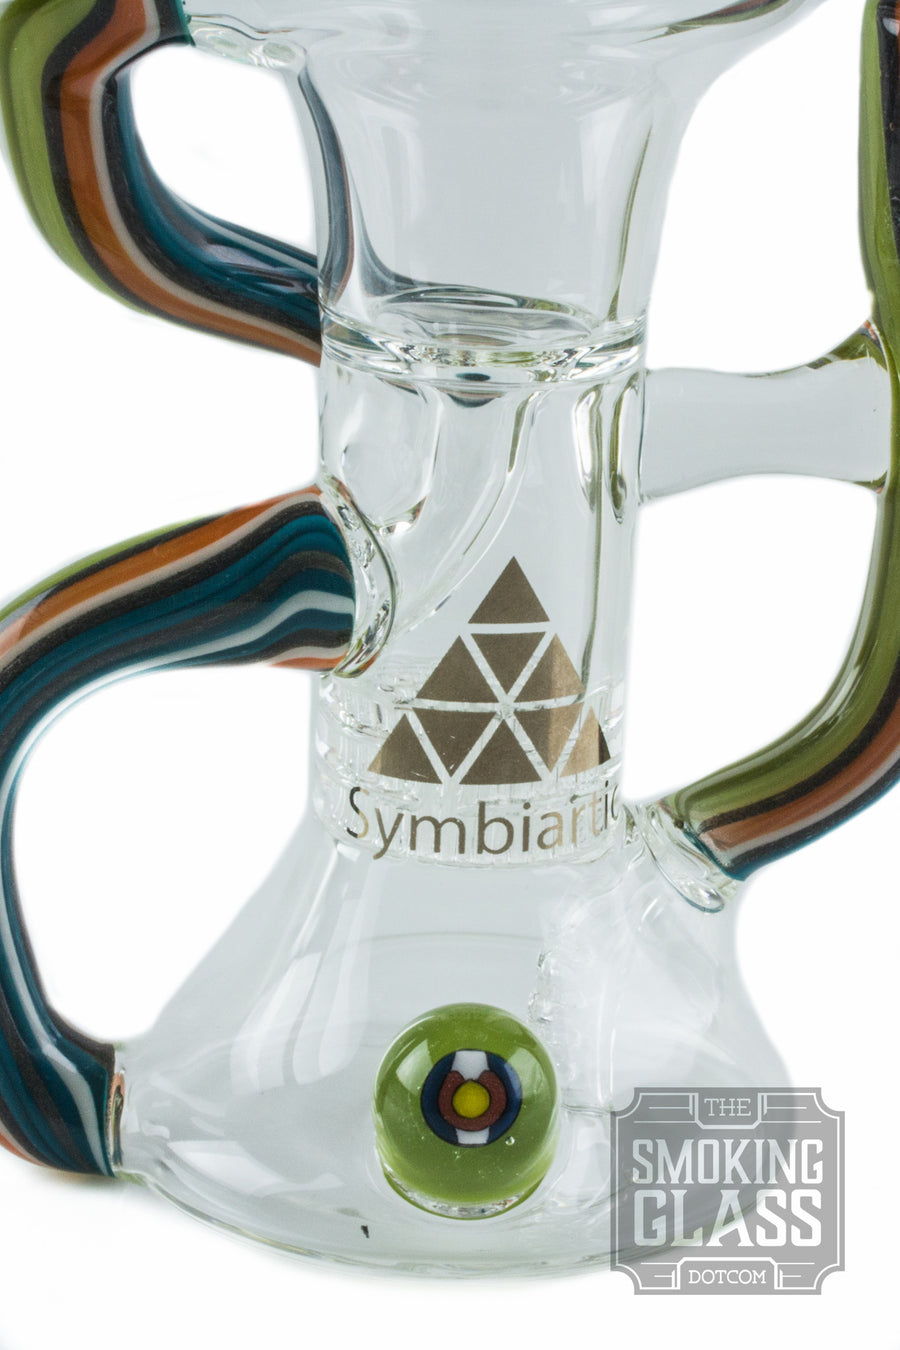 SYMBIARTIC GLASS